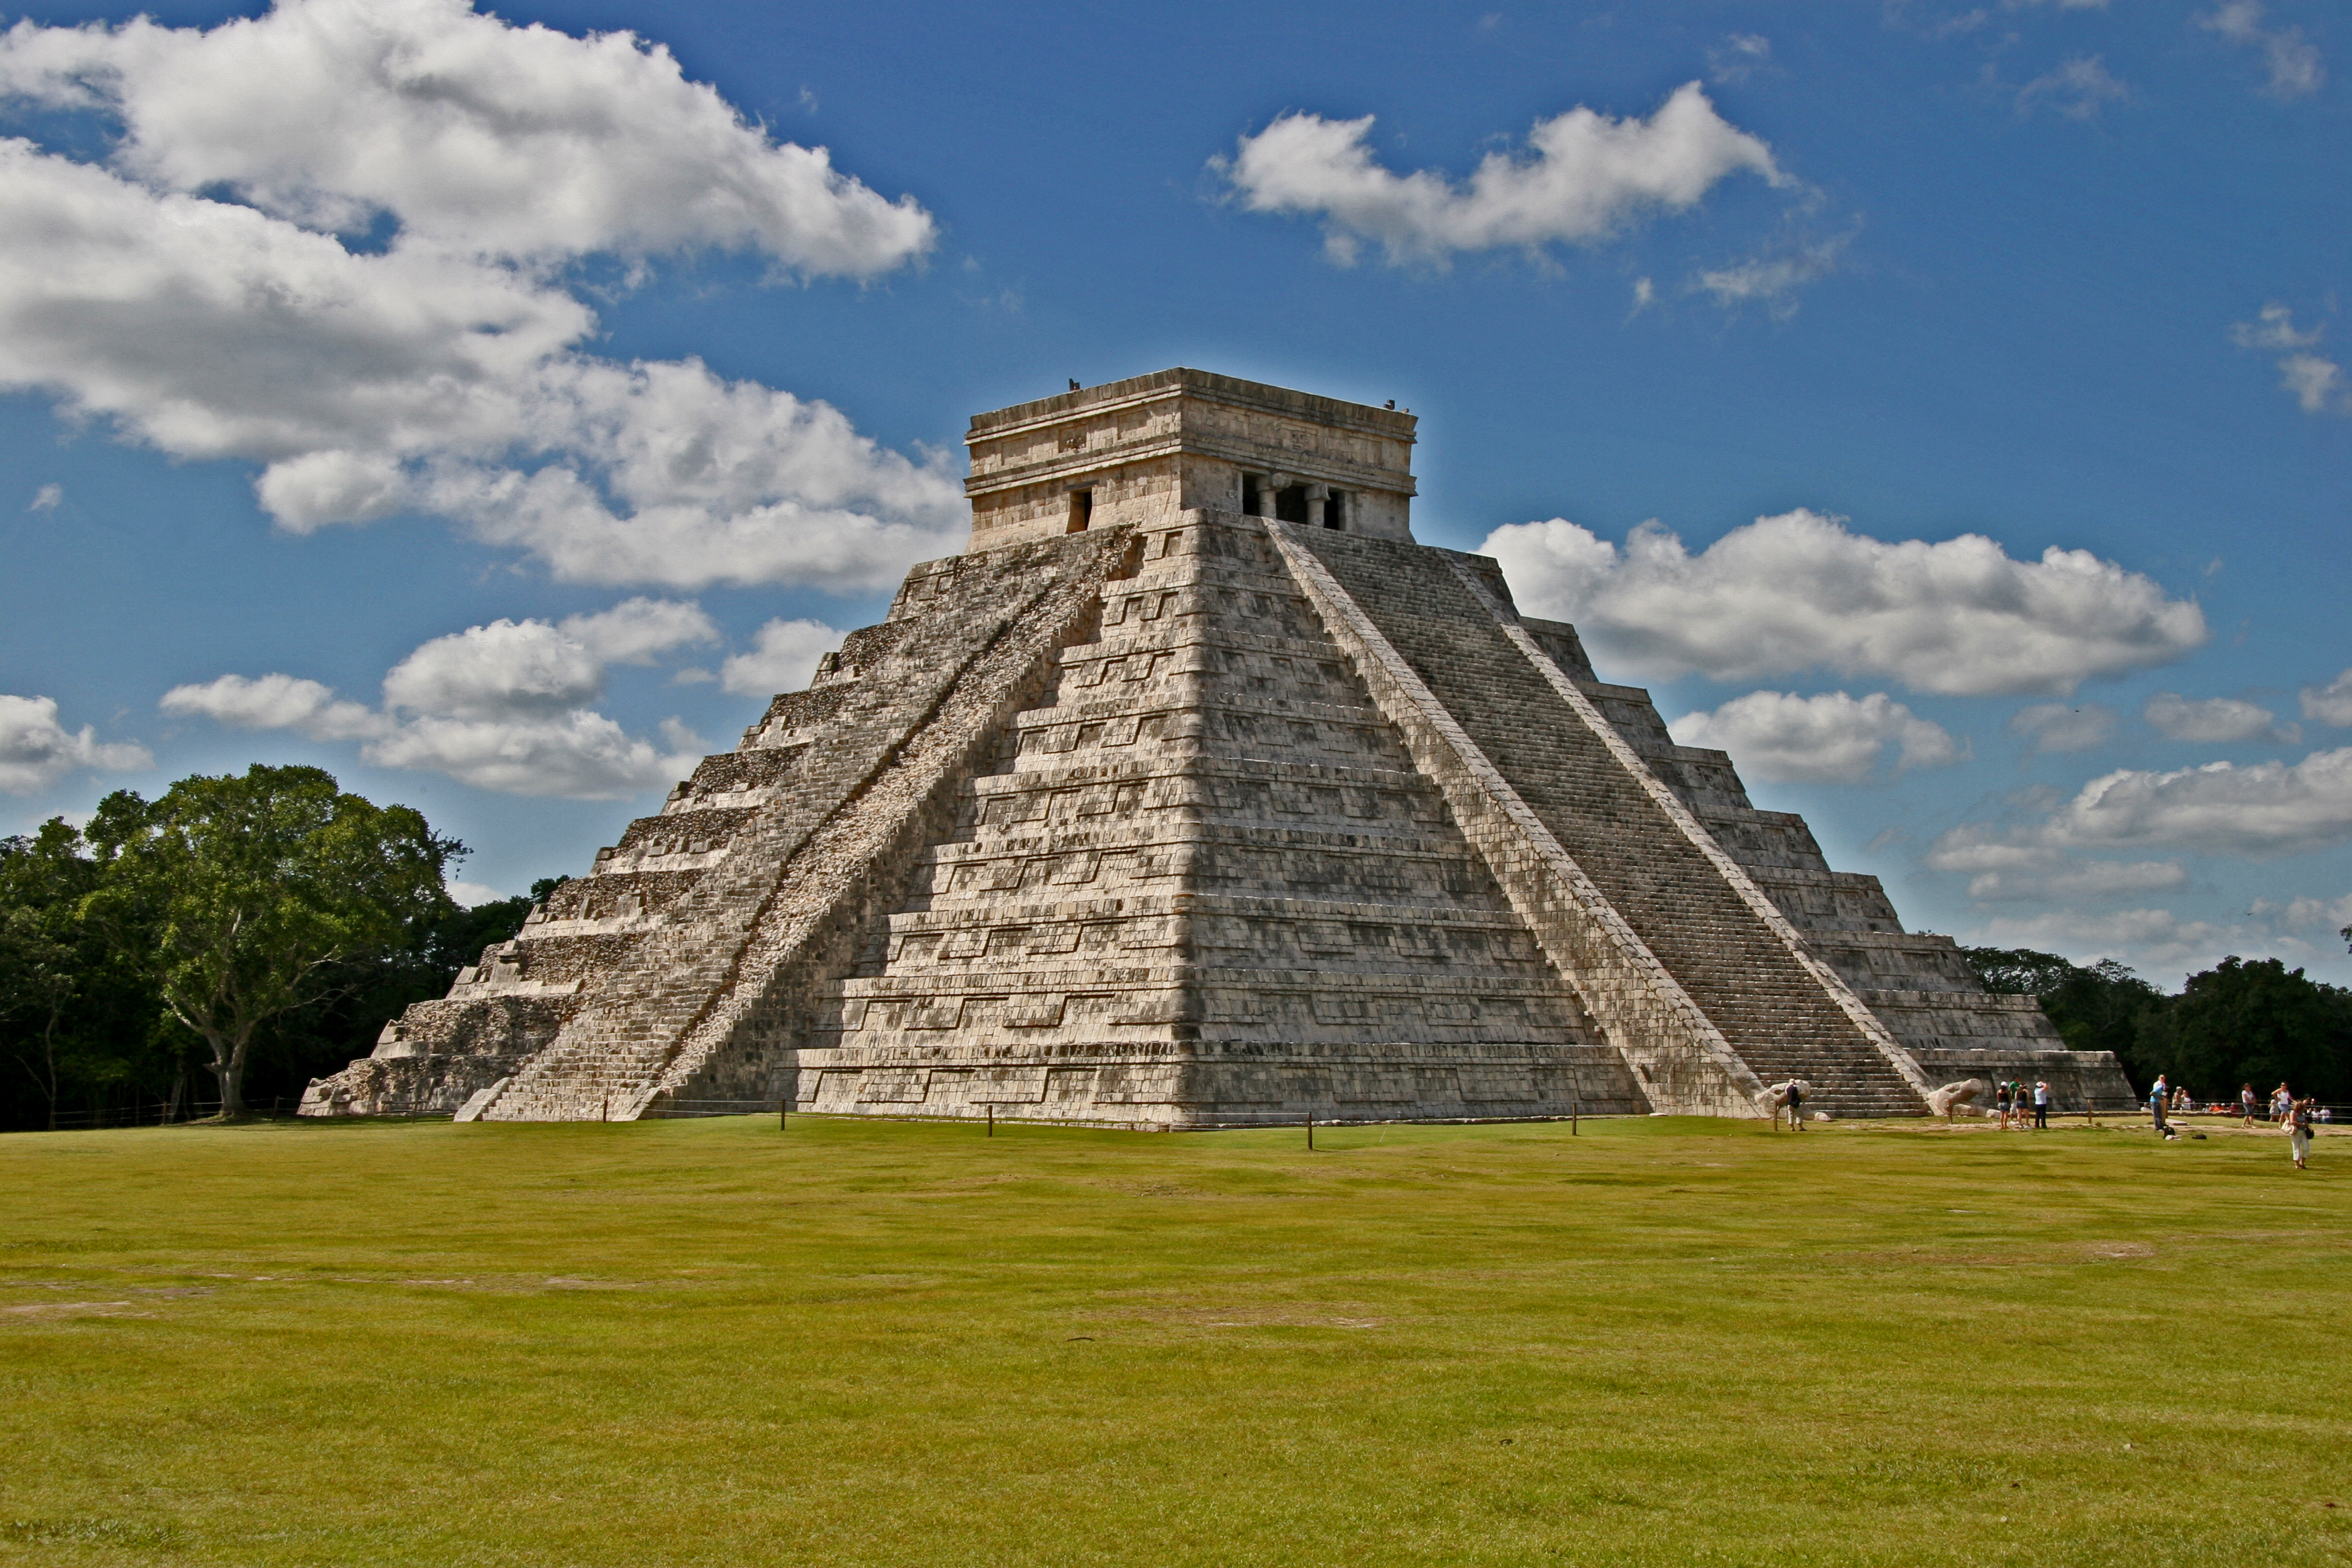 File:El Castillo Stitch 2008 Edit 2.jpg - Wikipedia